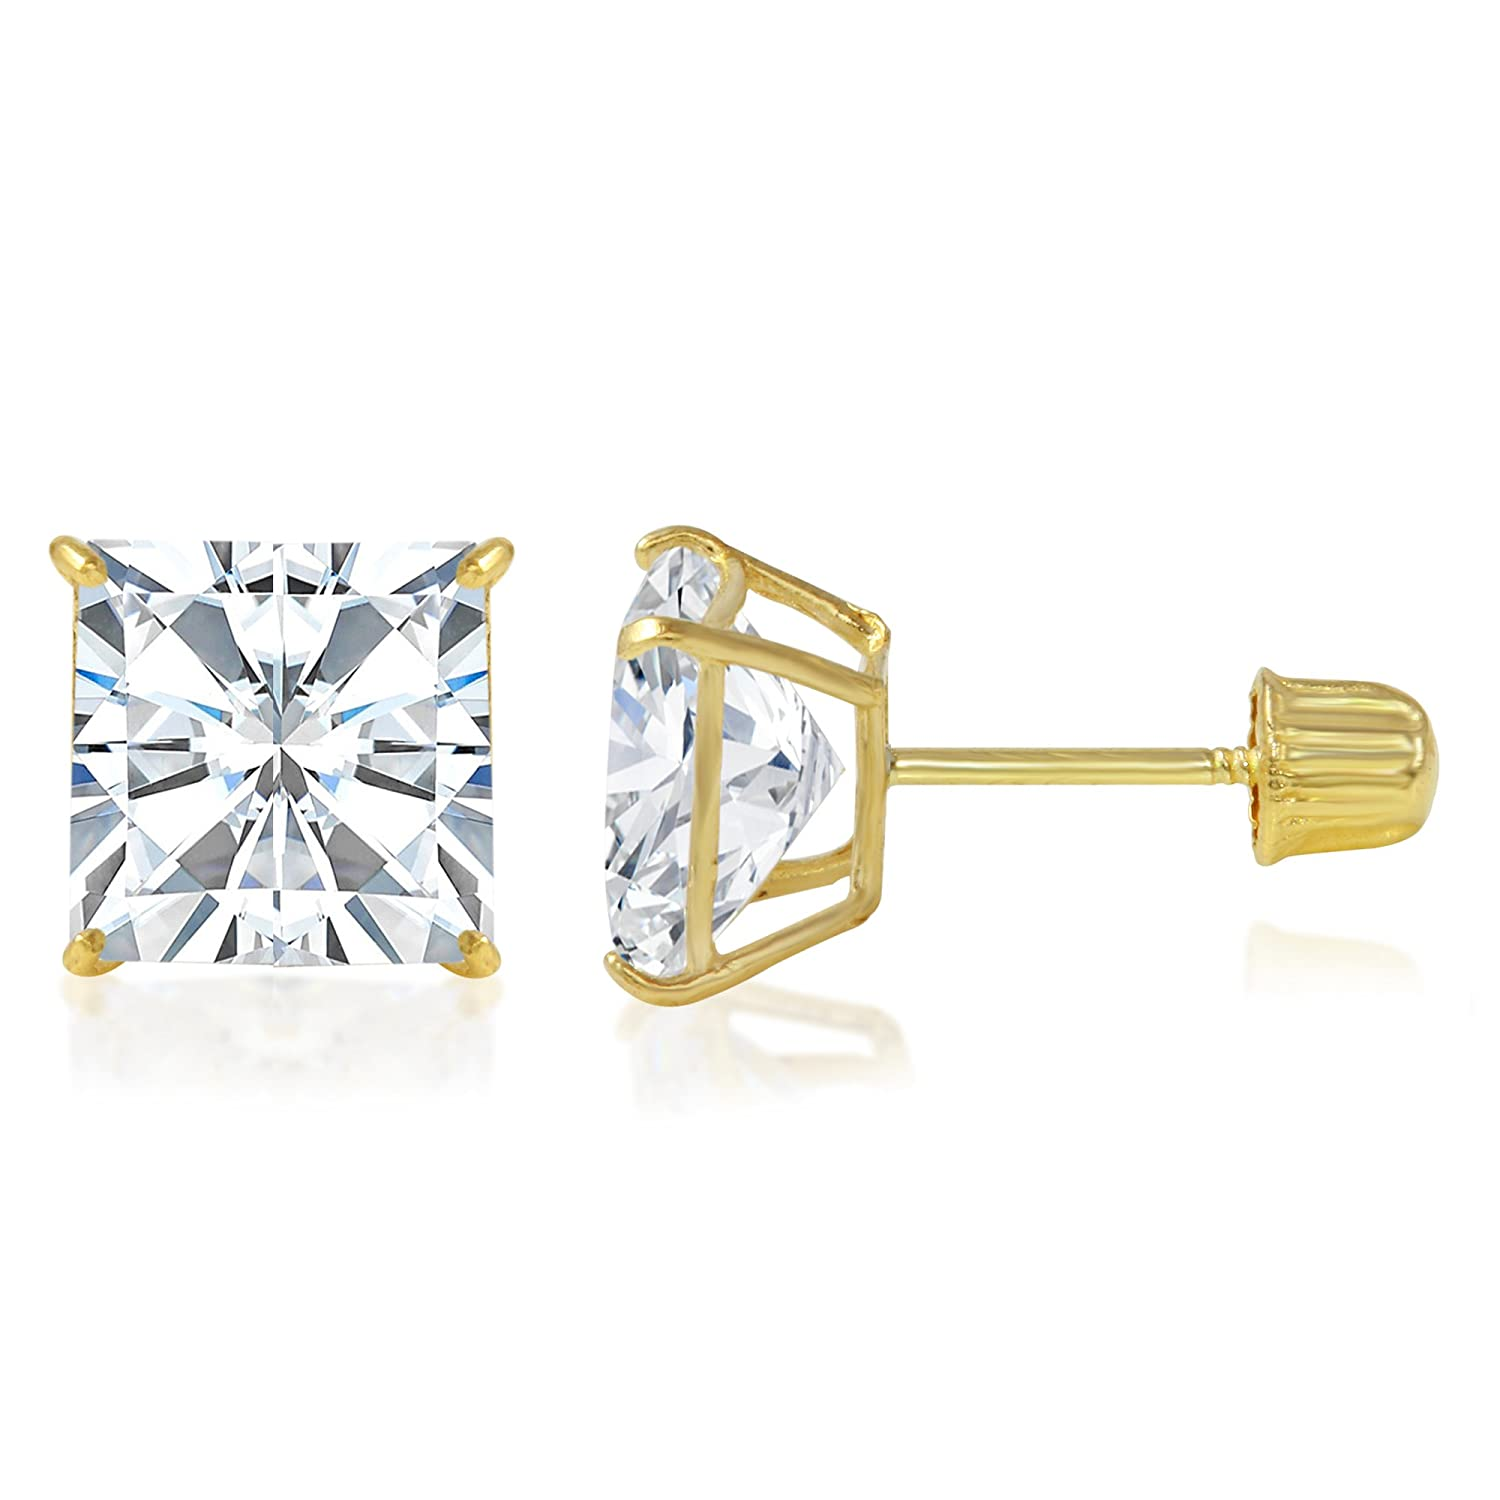 Ioka 14K Yellow OR White Gold Square Solitaire Princess Cut Cubic Zirconia CZ Stud Screw Back Earrings in Various Sizes IG-01-801-526